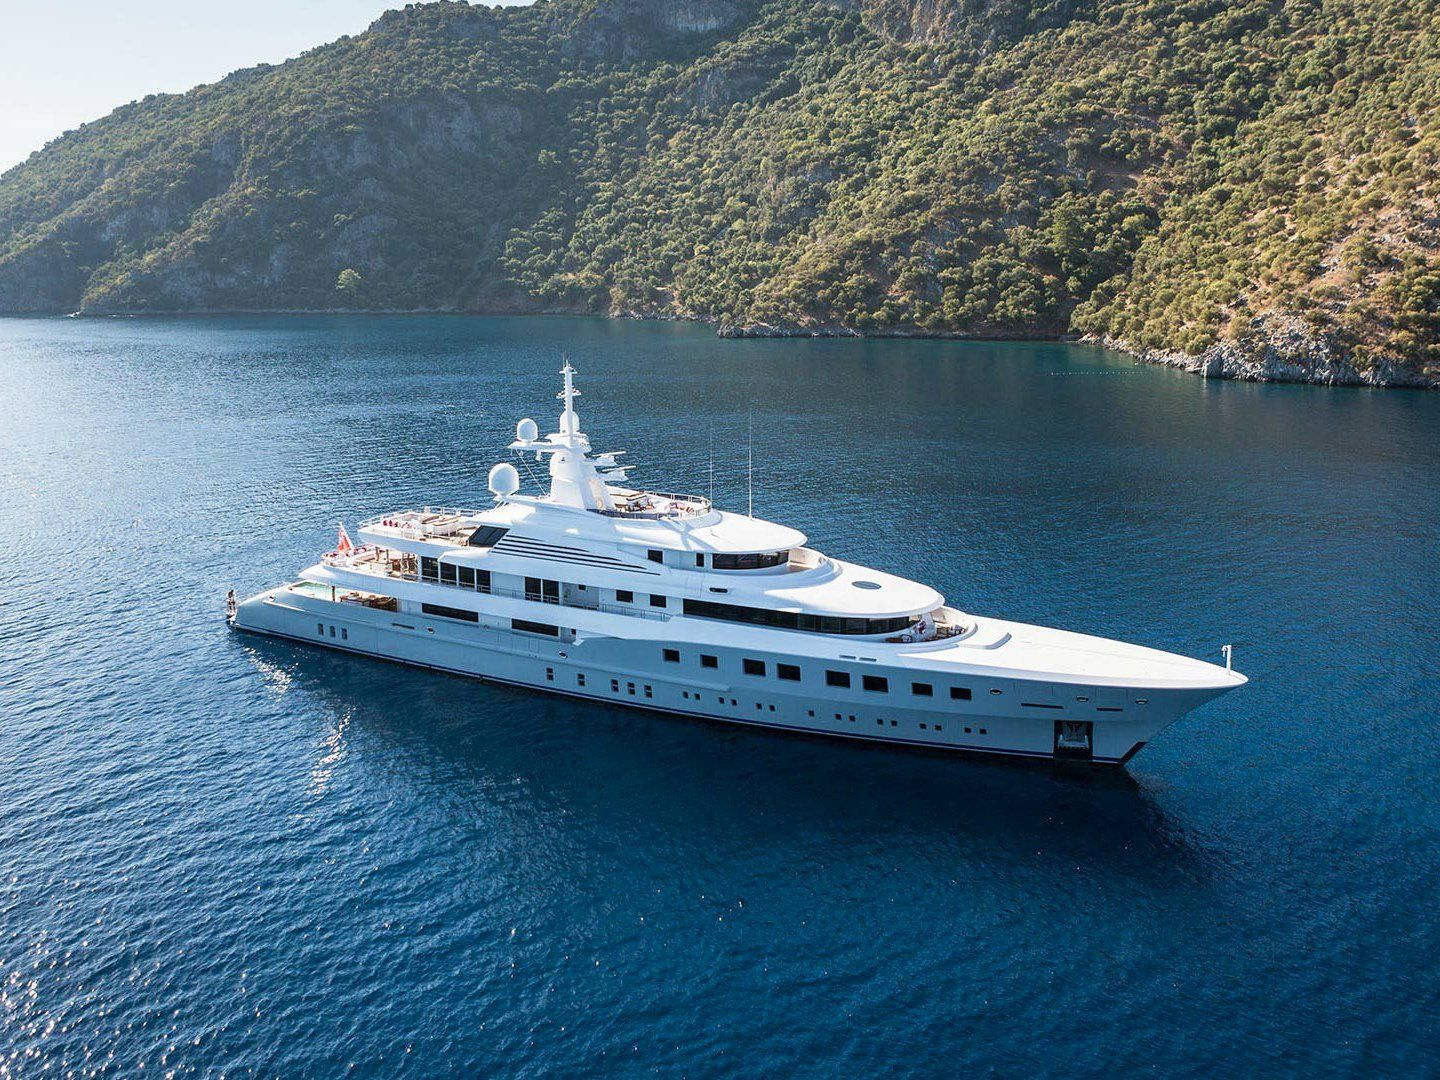 Take A Look Inside 10 Of The Most Luxurious Superyachts On Sale At